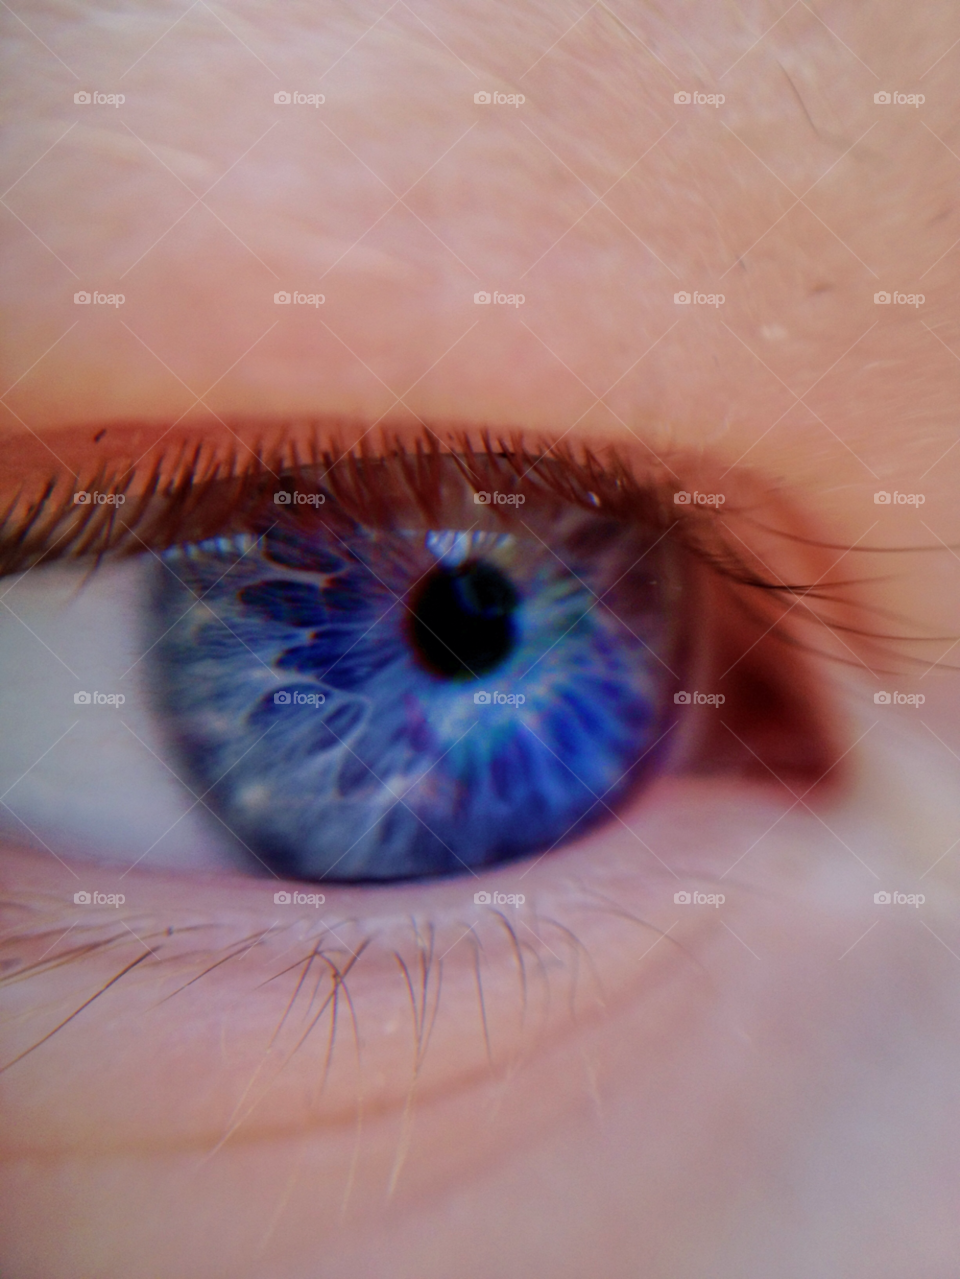 Extreme close-up of a human eye